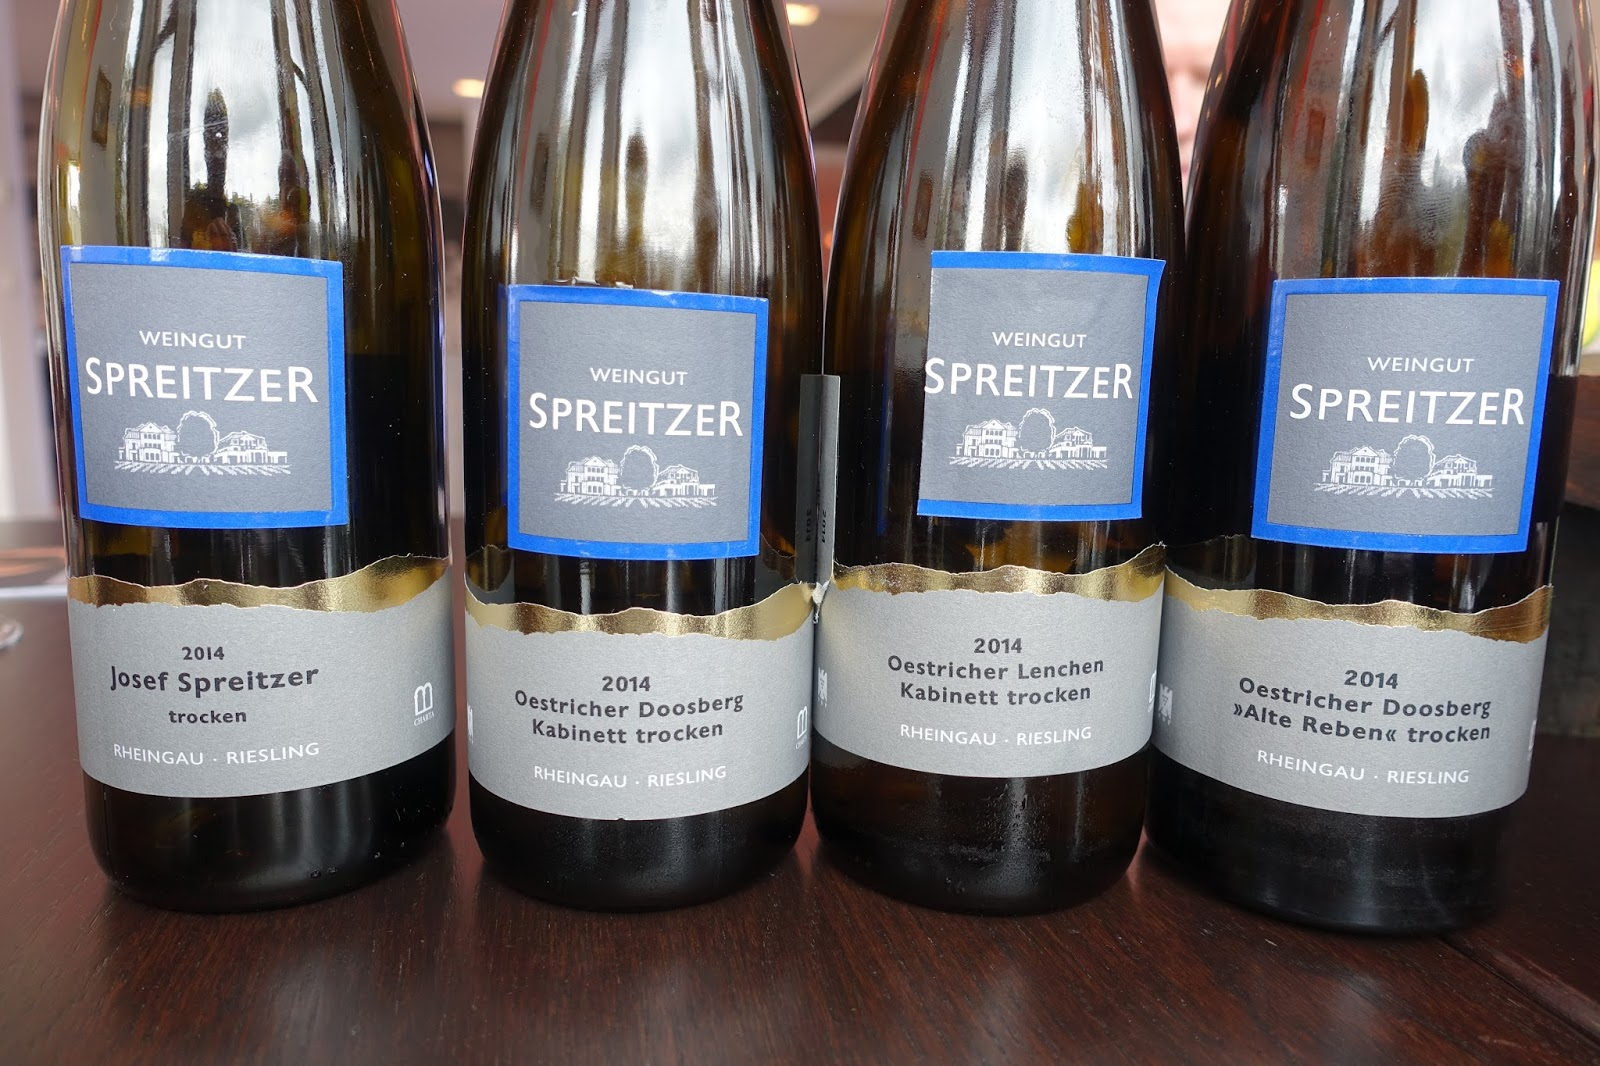 Riesling Trocken Wein Schiller Wine Tour And Tasting At Weingut Spreitzer In Oestrich